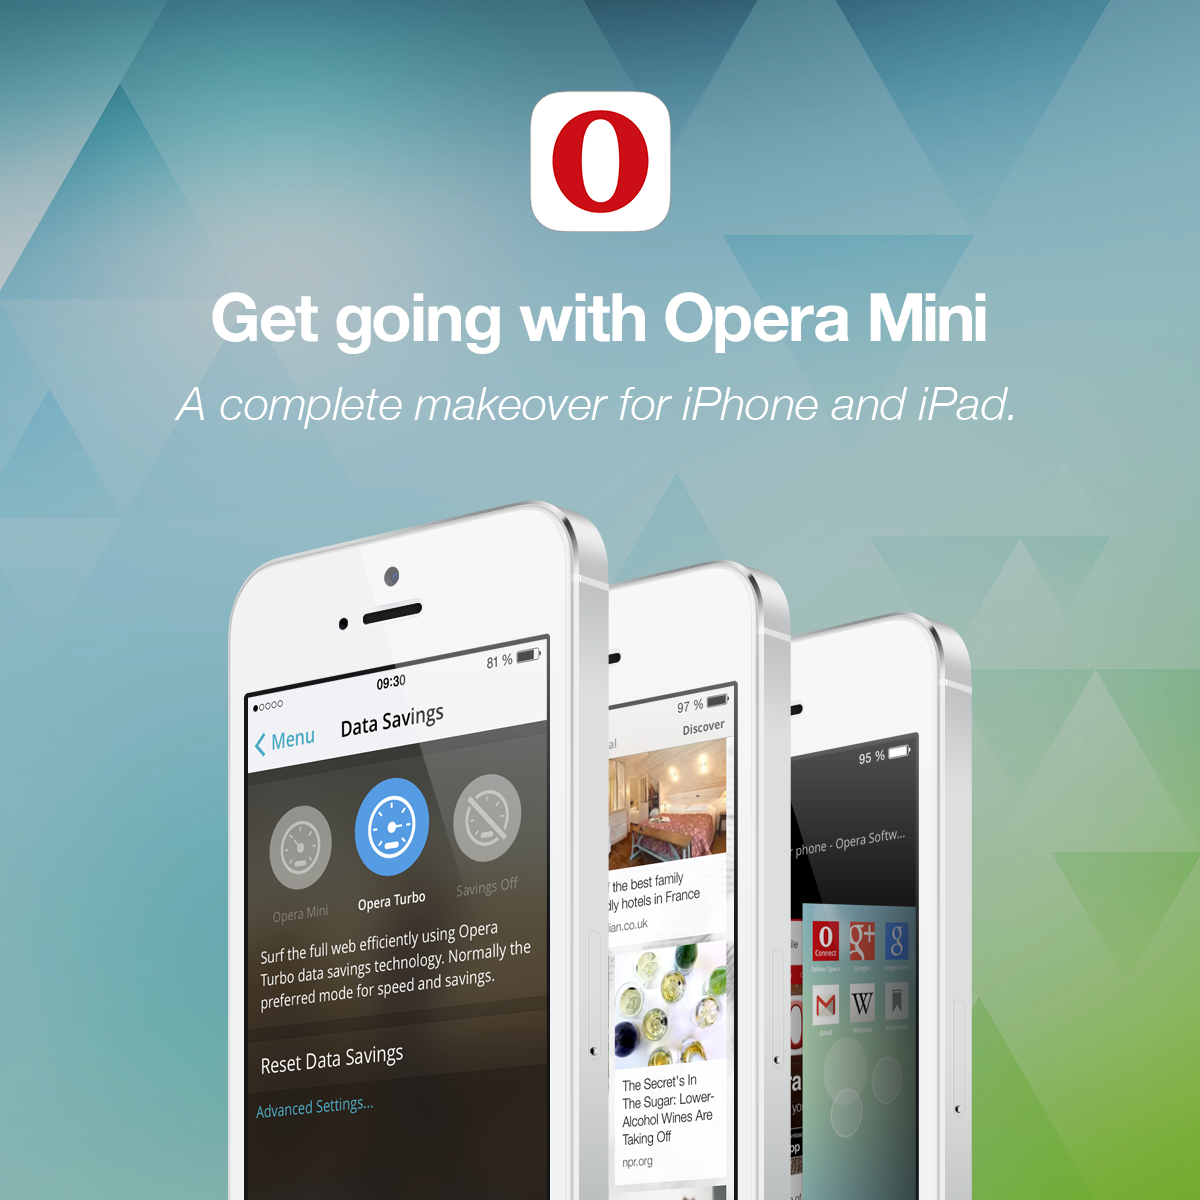 Opera Mini App for iPhone, iPad, and Mac Devices